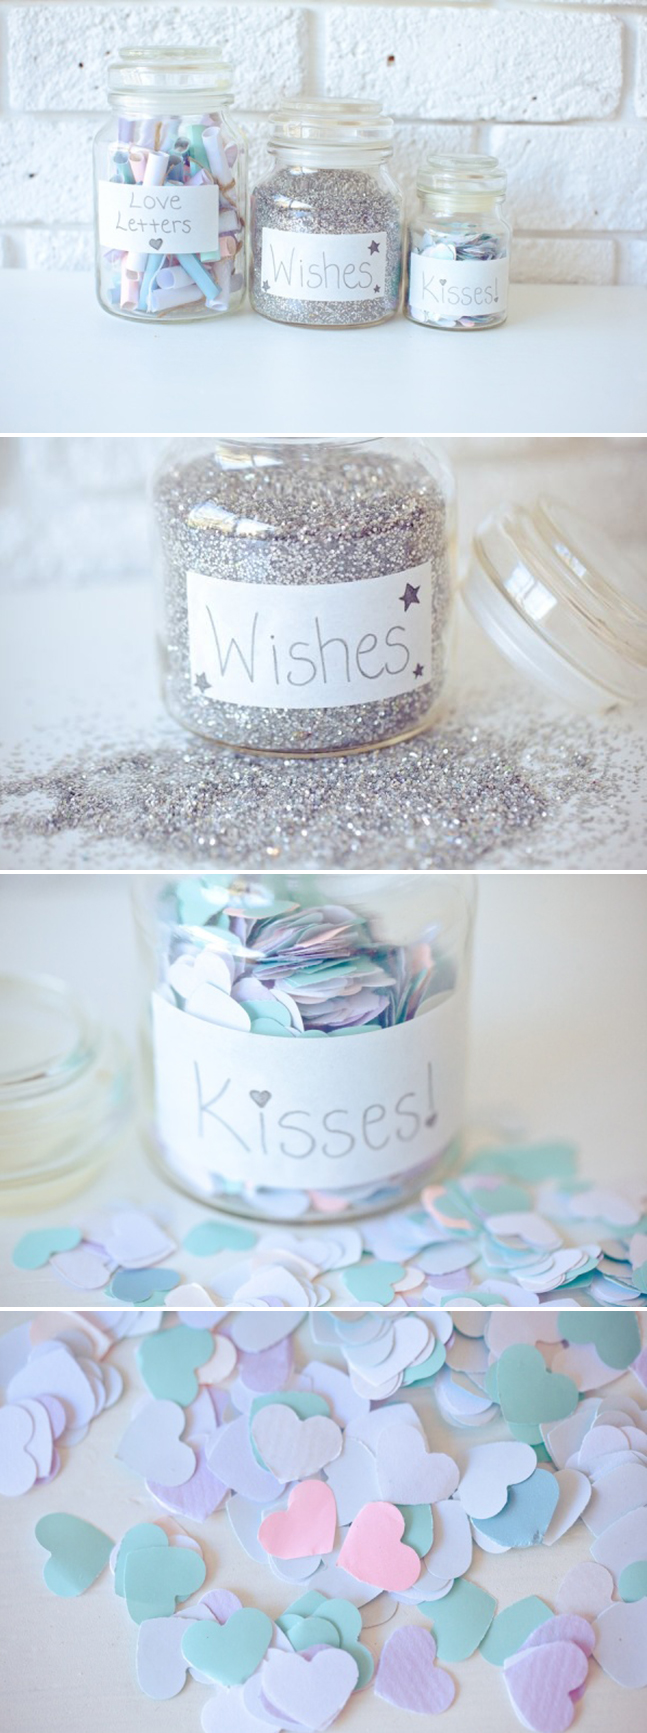 Valentine's Day Jars - Love Letters, Wishes & Kisses